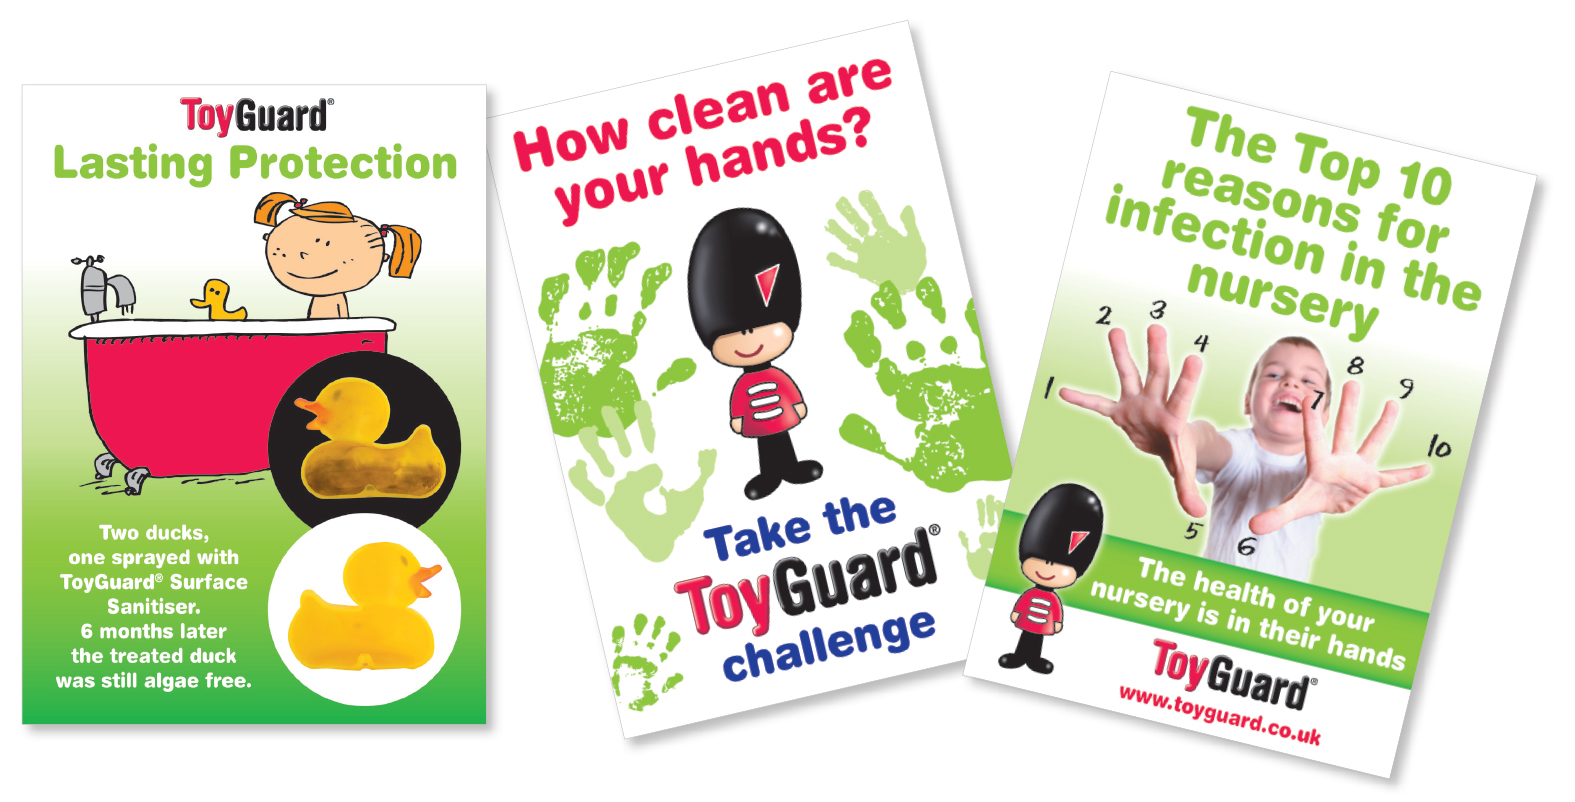 posters, communication, hand-washing, hygiene